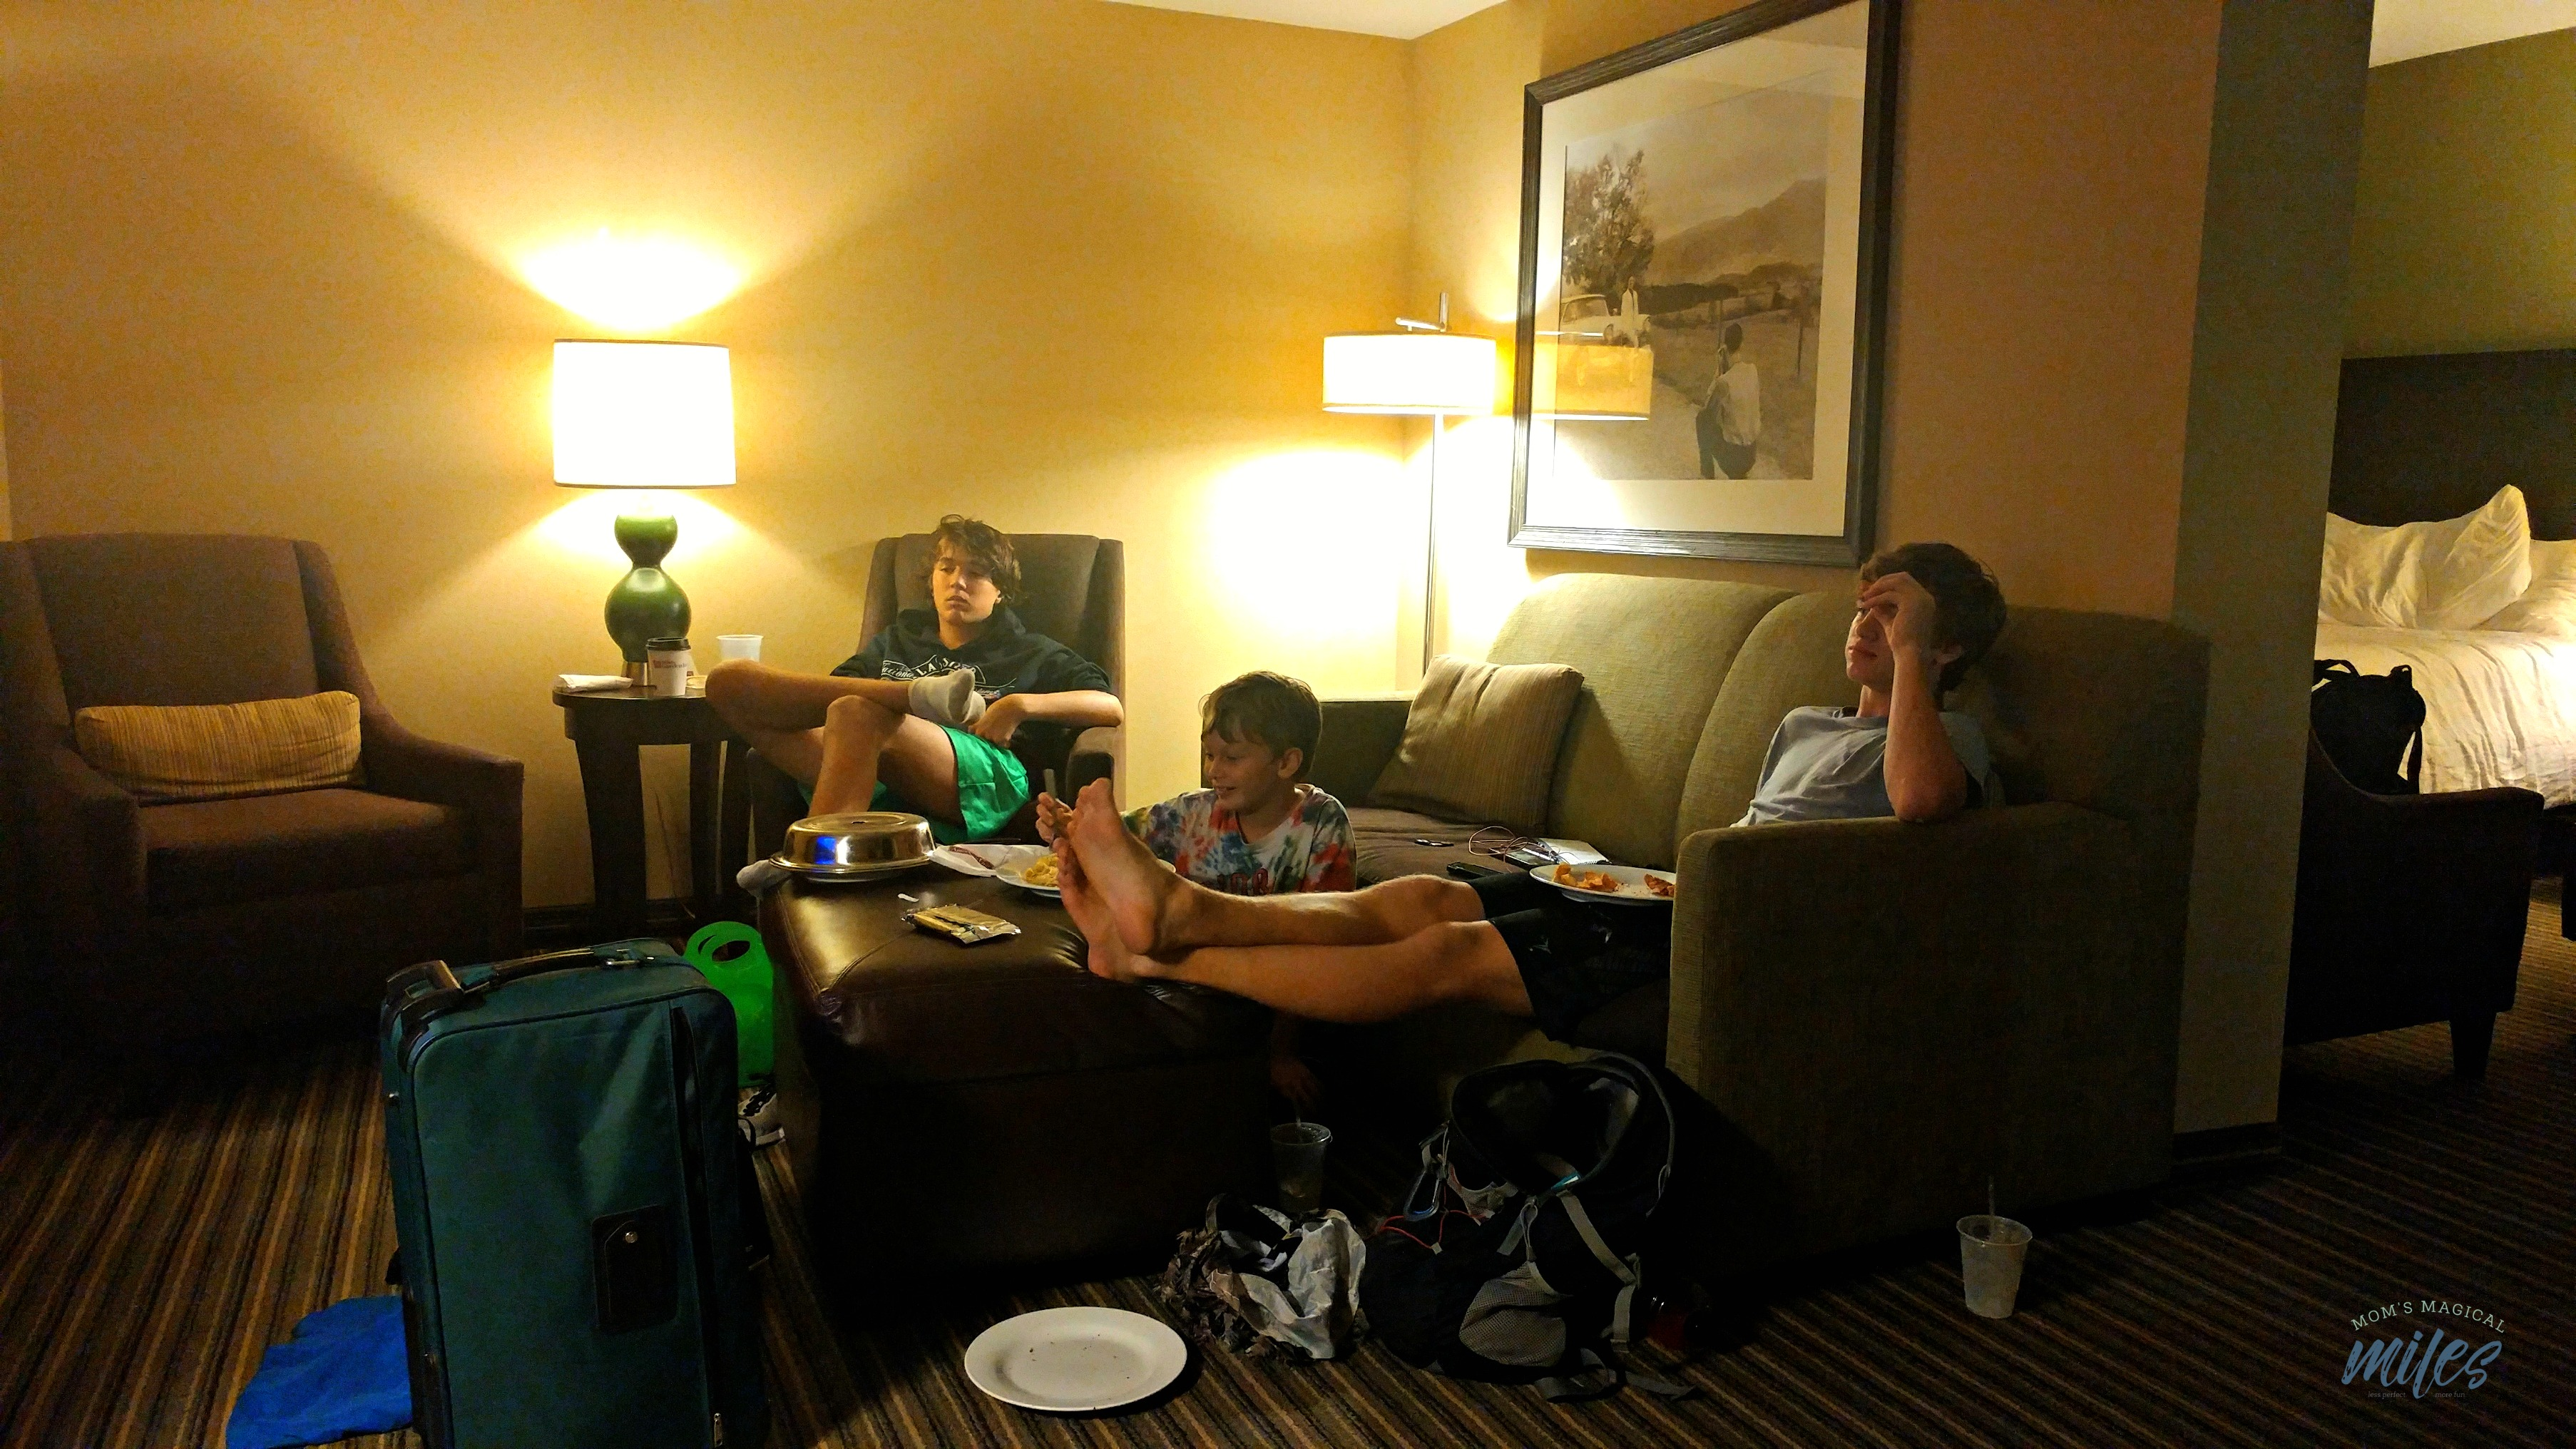 We found plenty of living space for four people in our room at the Hilton Garden Inn in Gatlinburg, TN!